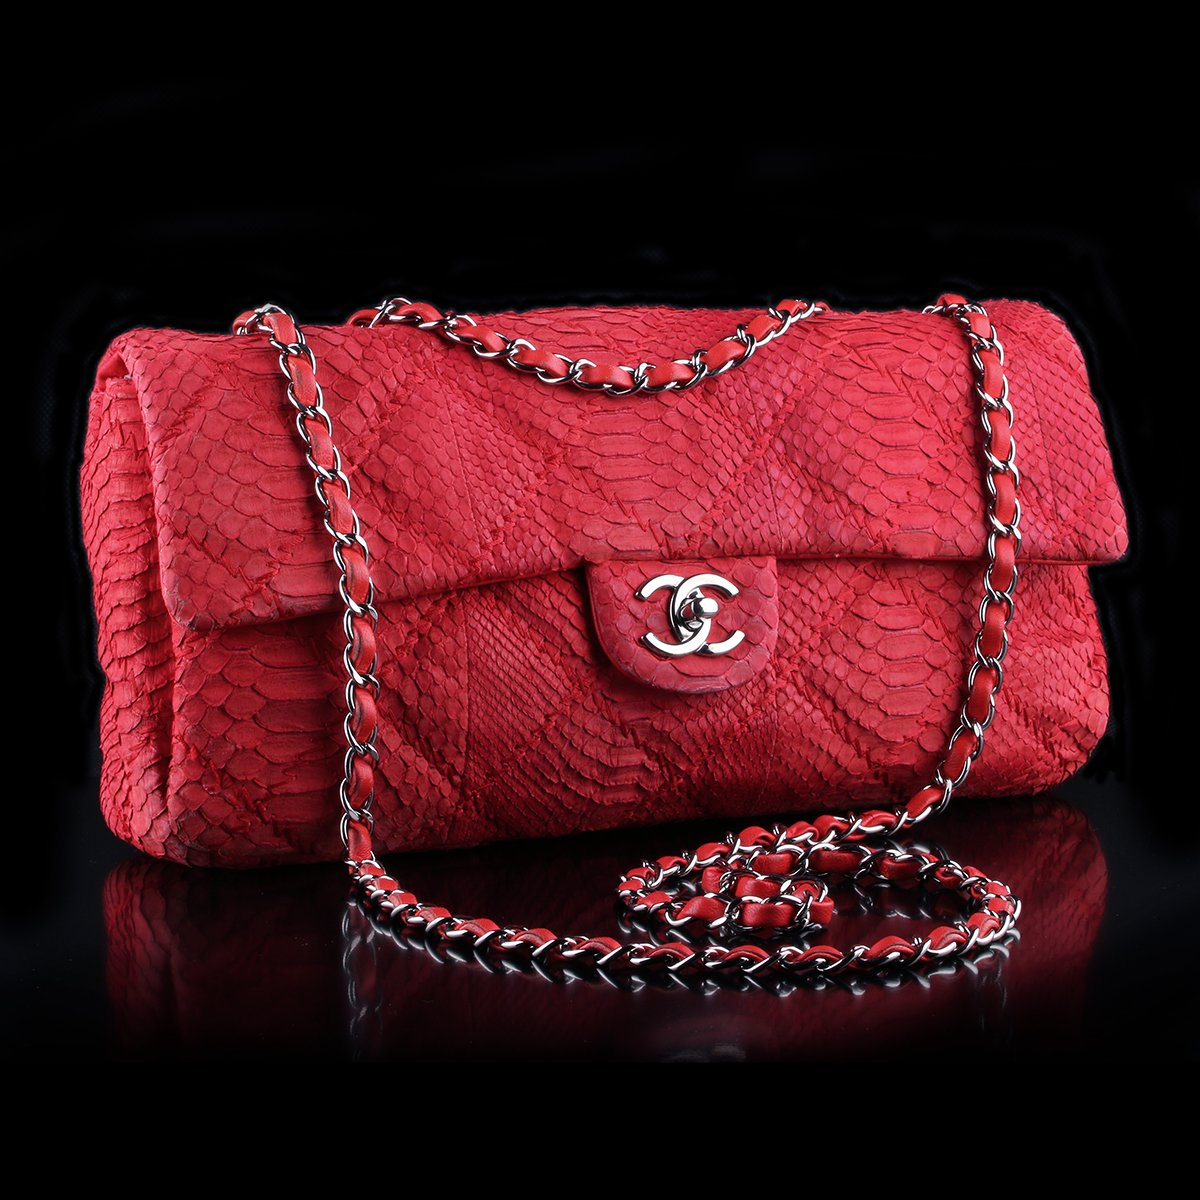 013e28f6547f Chanel Red Python East West Flap Bag - Classic390